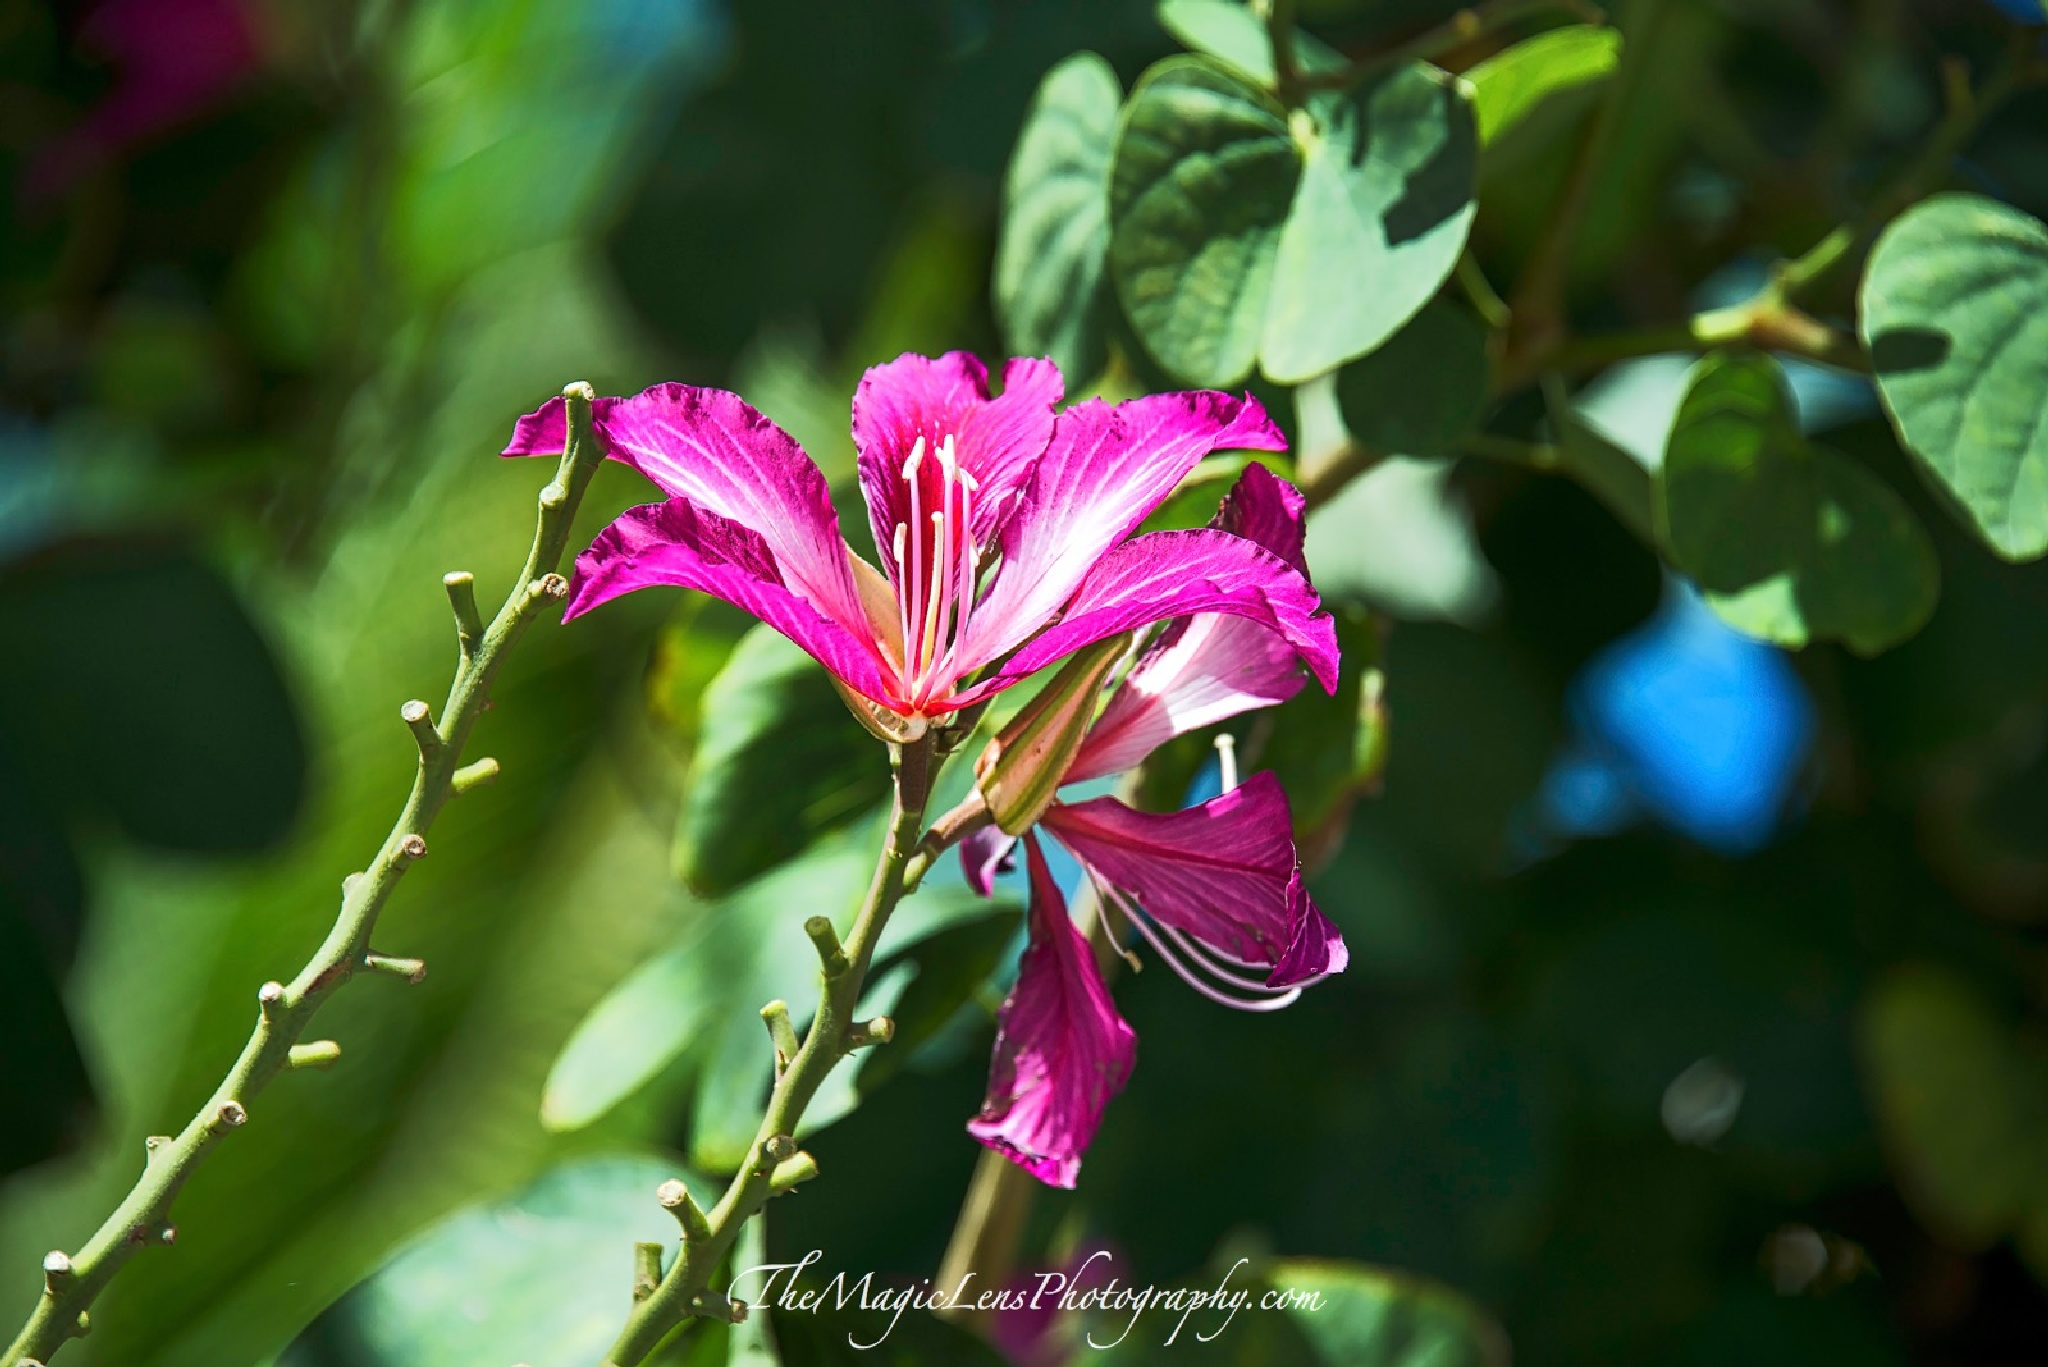 Wild Orchid by themagiclensphotography